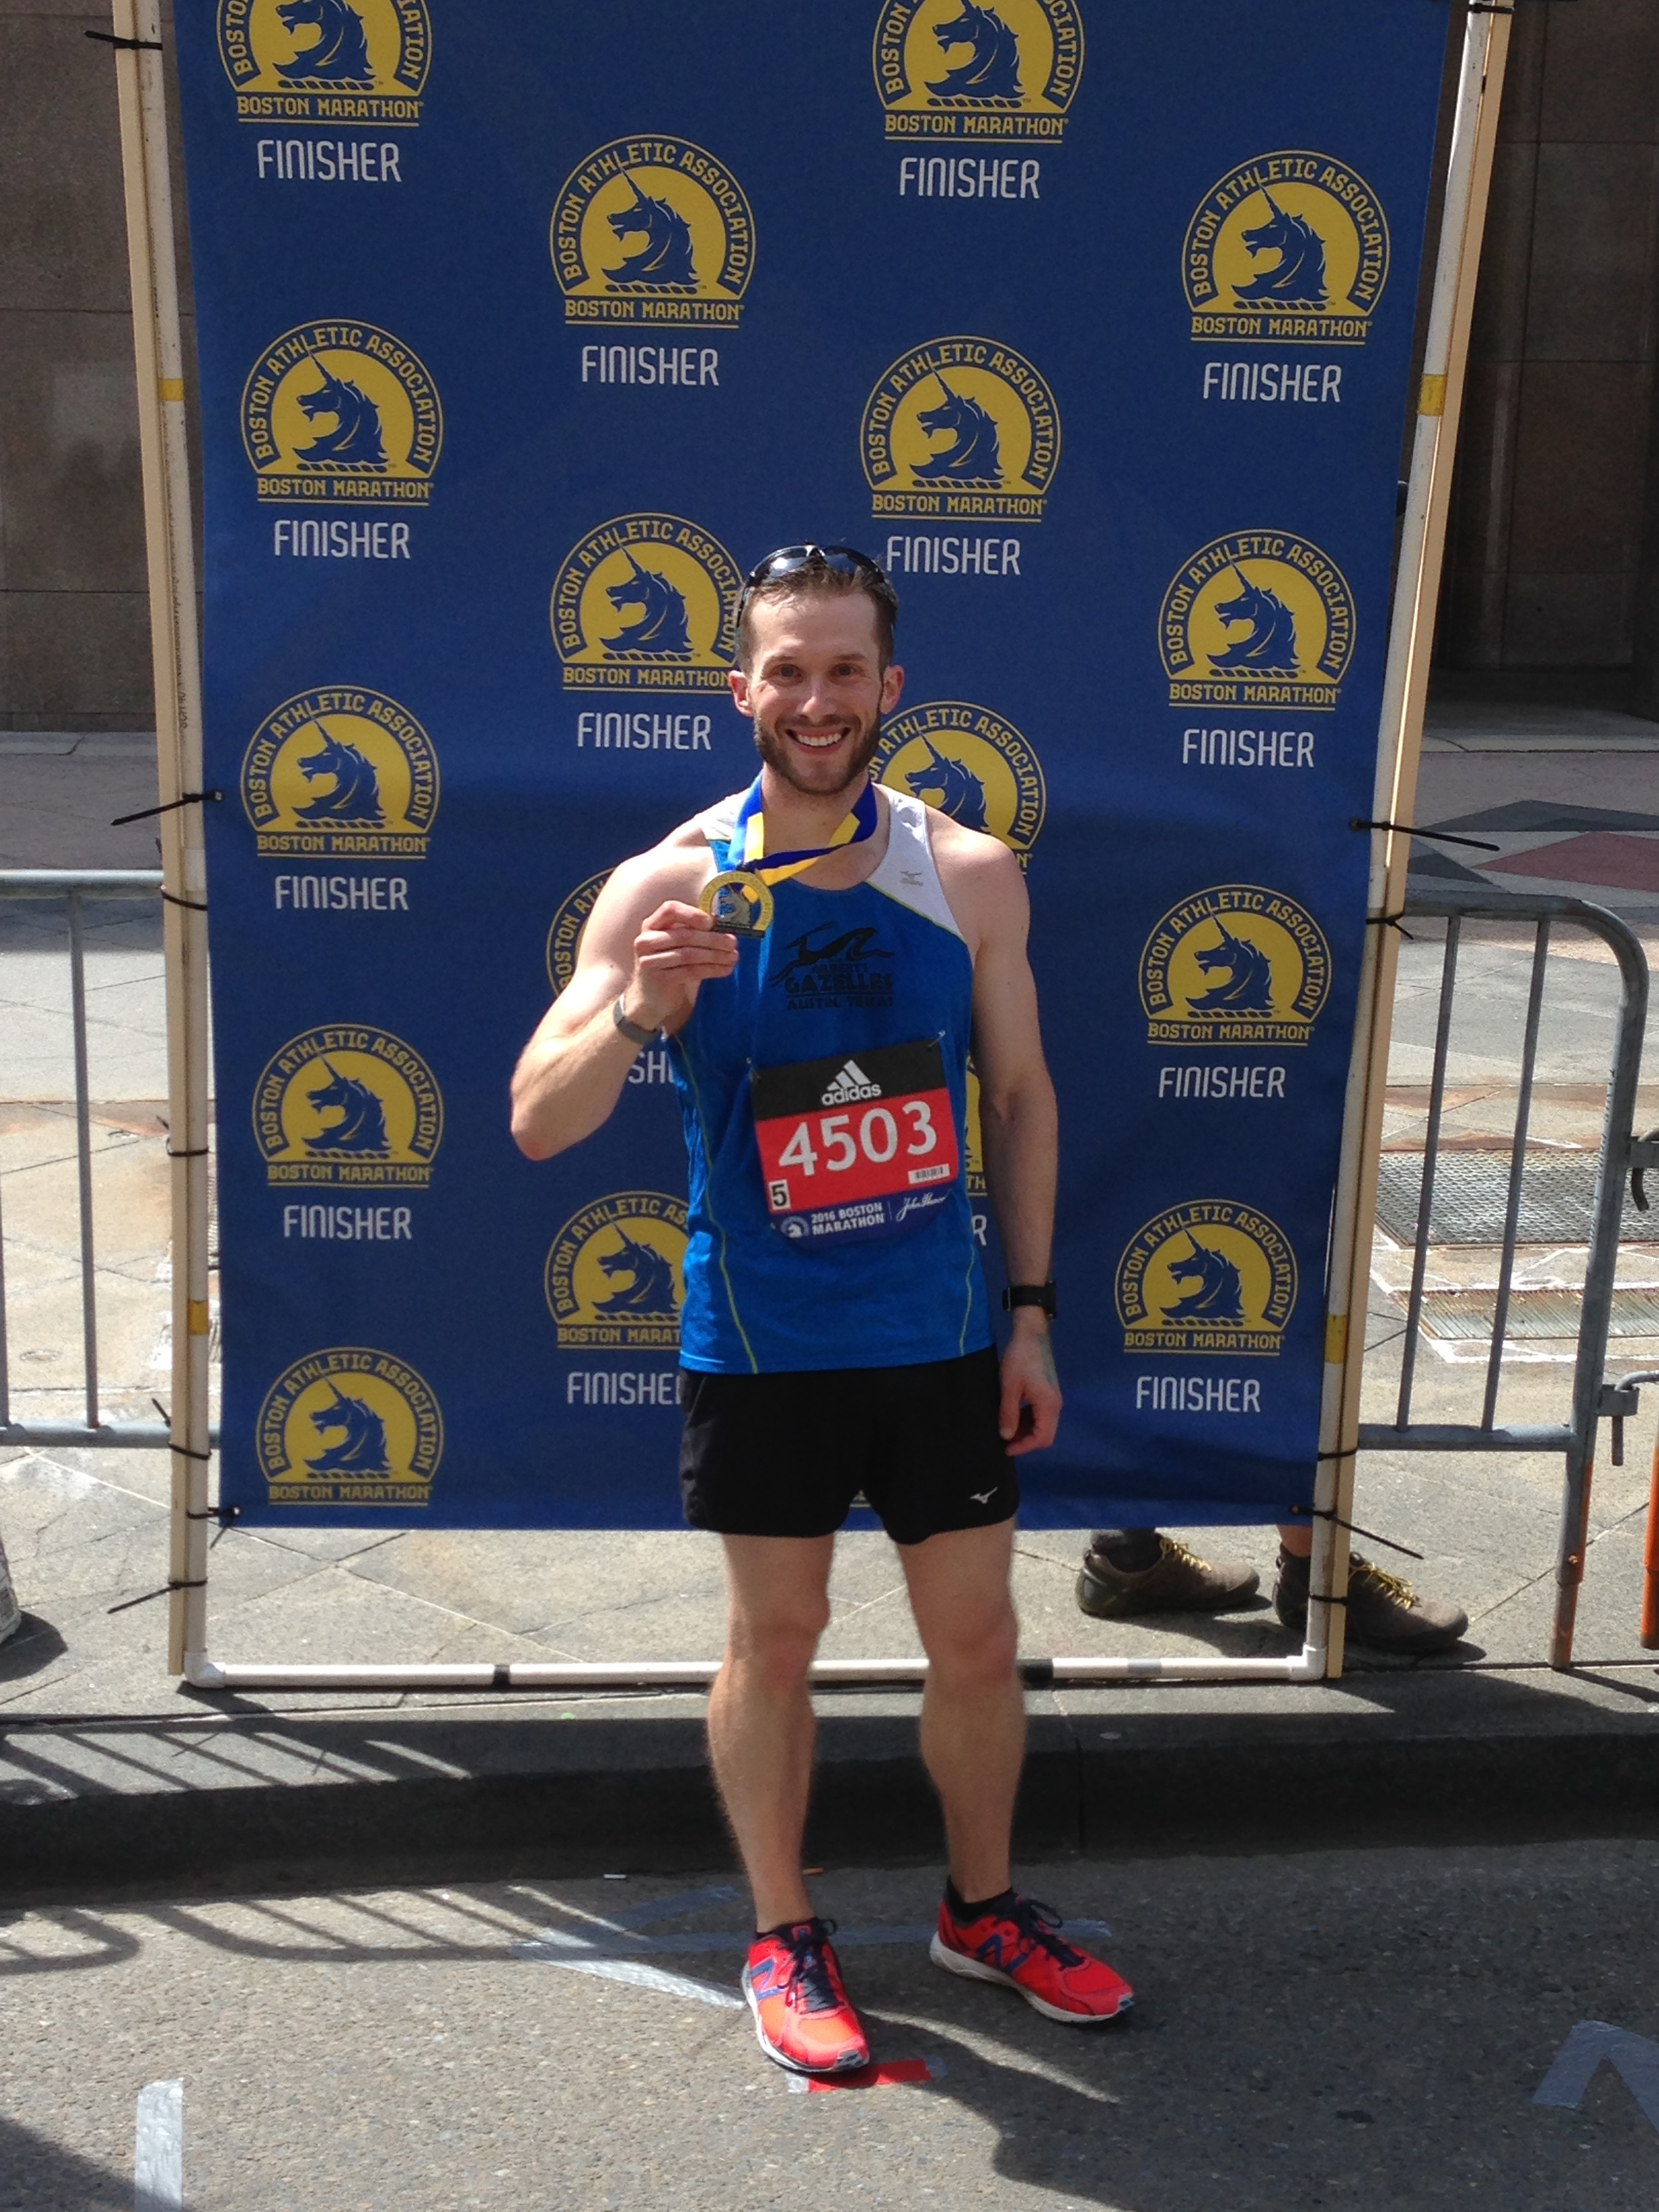 Bonus episode 41: Matt Sorenson - Matt Sorenson currently hails from Austin, TX and he's a father, husband, scientist, podcaster, runner, and a recent author. After enjoying soccer and track and field throughout school, Matt turned to distance running after his new wife introduced him to it in 2008. Since then, Matt has run the Boston Marathon three times, as well as Chicago and New York City. Matt started the Runified Podcast to help share extraordinary stories from everyday runners and has produced over 100 episodes. He's currently in the process of launching his first children's book, My Mommy Runs, which enables adults to share the transformative power of running through unique lines and engaging comic book style illustrations.Links:25% discount off one copy of My Mommy Runs: http://bit.ly/MyMommyRuns25Email: matt@runified.coIG: https://www.instagram.com/g5active/Twitter: https://twitter.com/g5activeFacebook: https://www.facebook.com/groups/mymommyrunsbook/ or https://www.facebook.com/g5active/